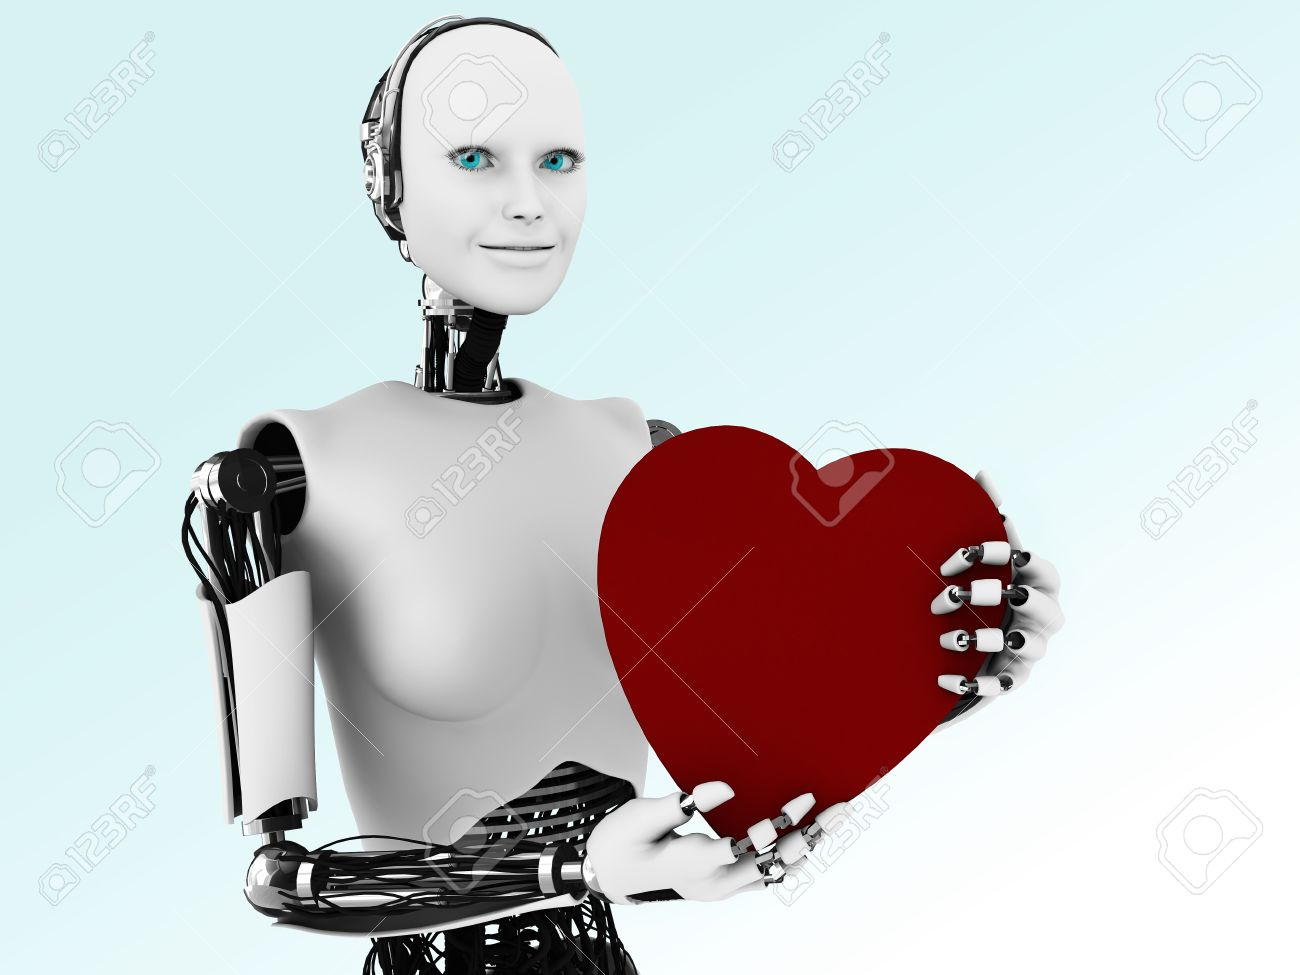 A robot woman holding a big red heart. Stock Photo - 12323271